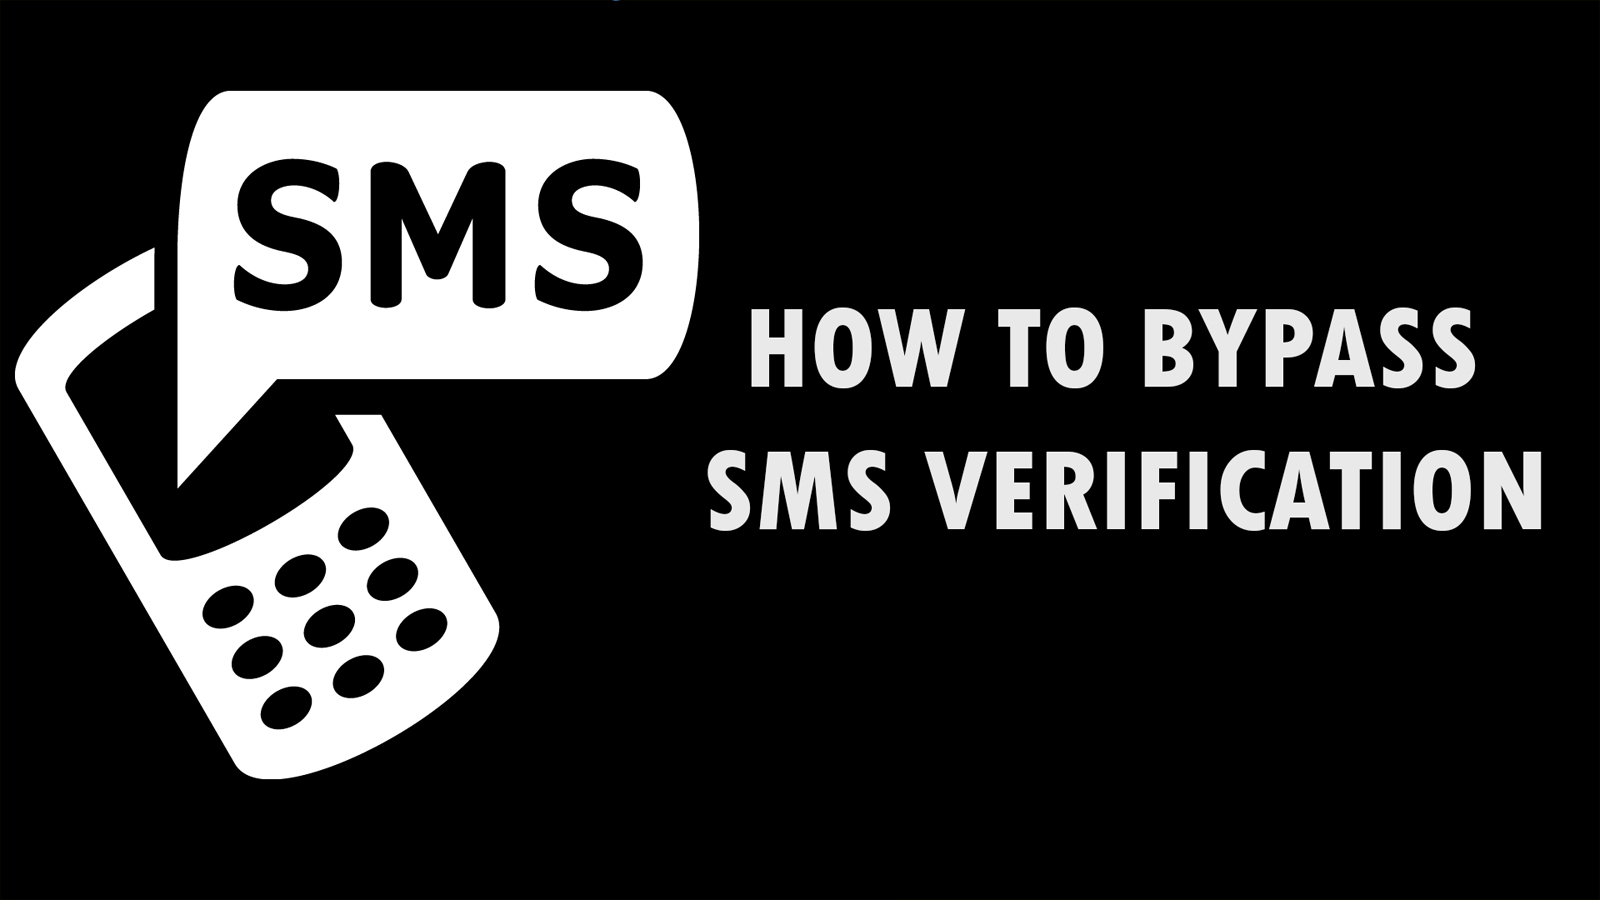 How To Bypass SMS Verification Of Any Website/Service - Effect Hacking